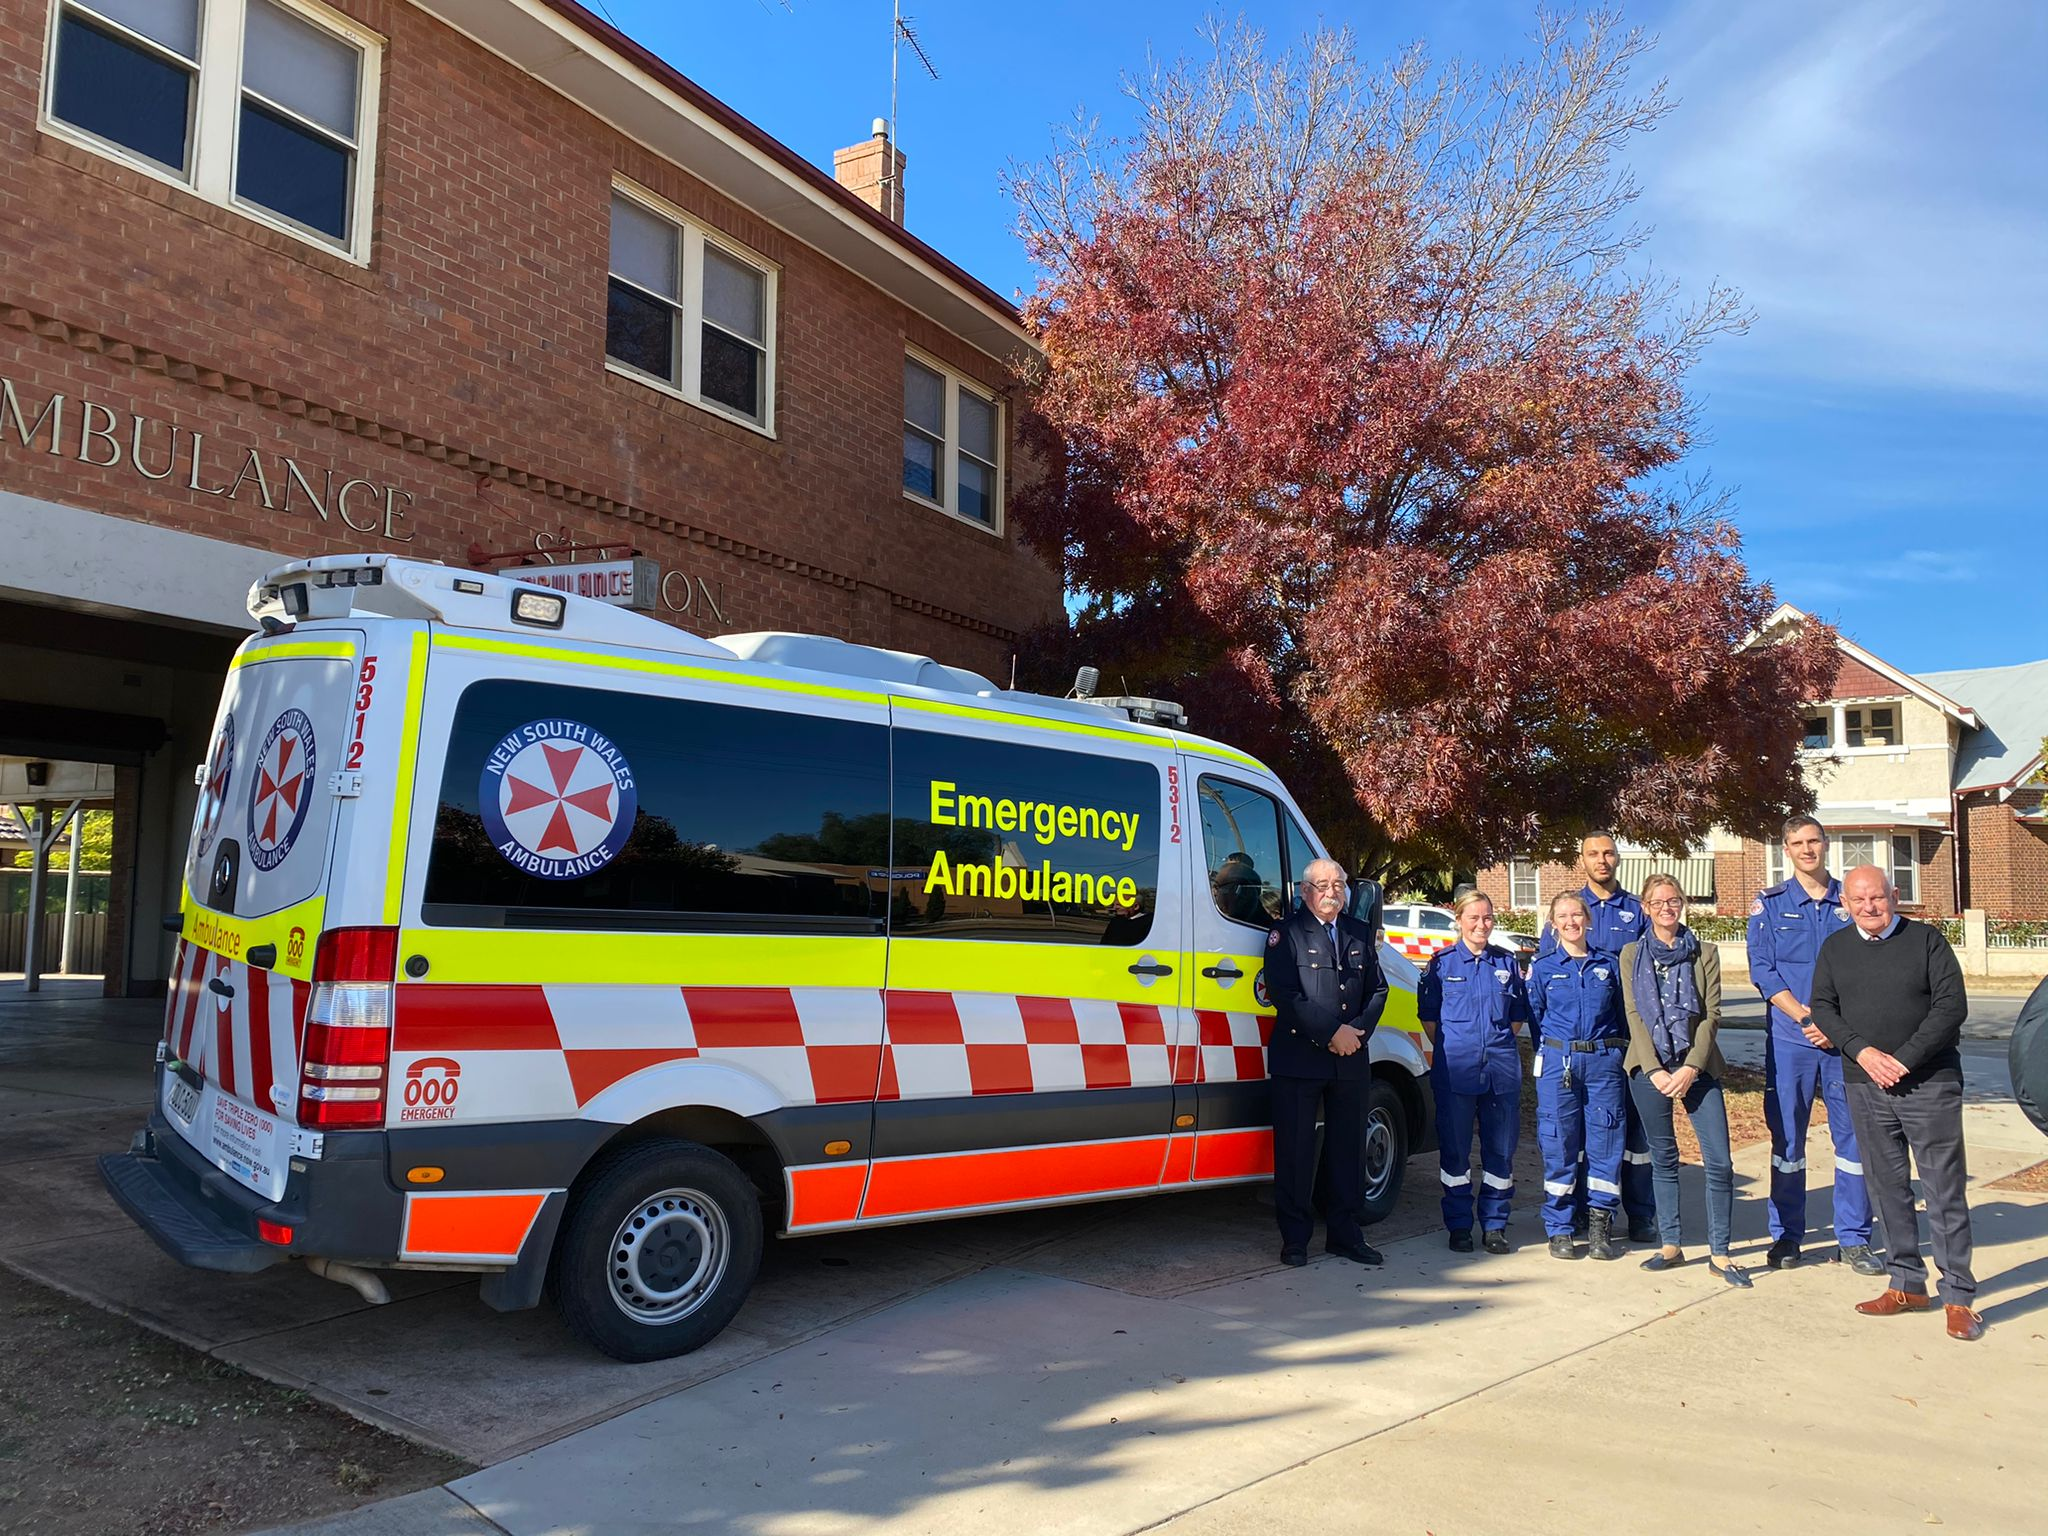 Paramedics and Steph Cooke stand in front of an ambulance.